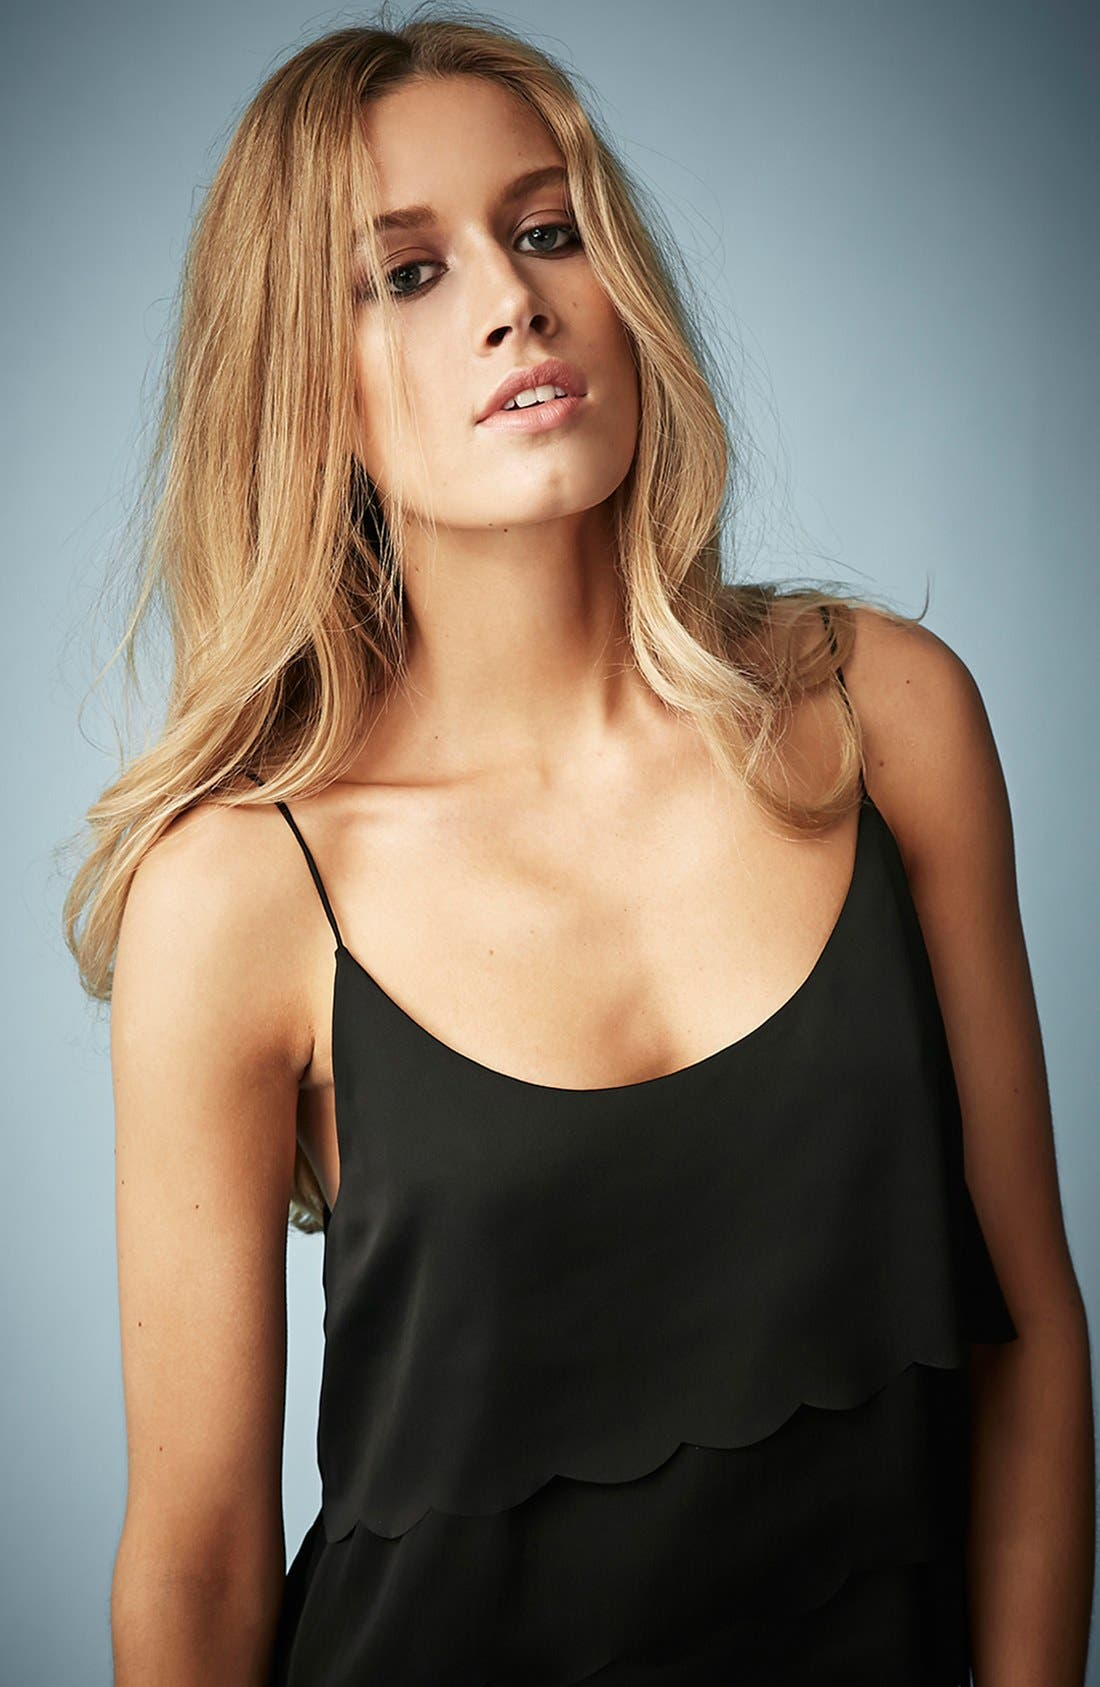 TOPSHOP,                             Kate Moss for Topshop Scalloped Camisole,                             Alternate thumbnail 4, color,                             001